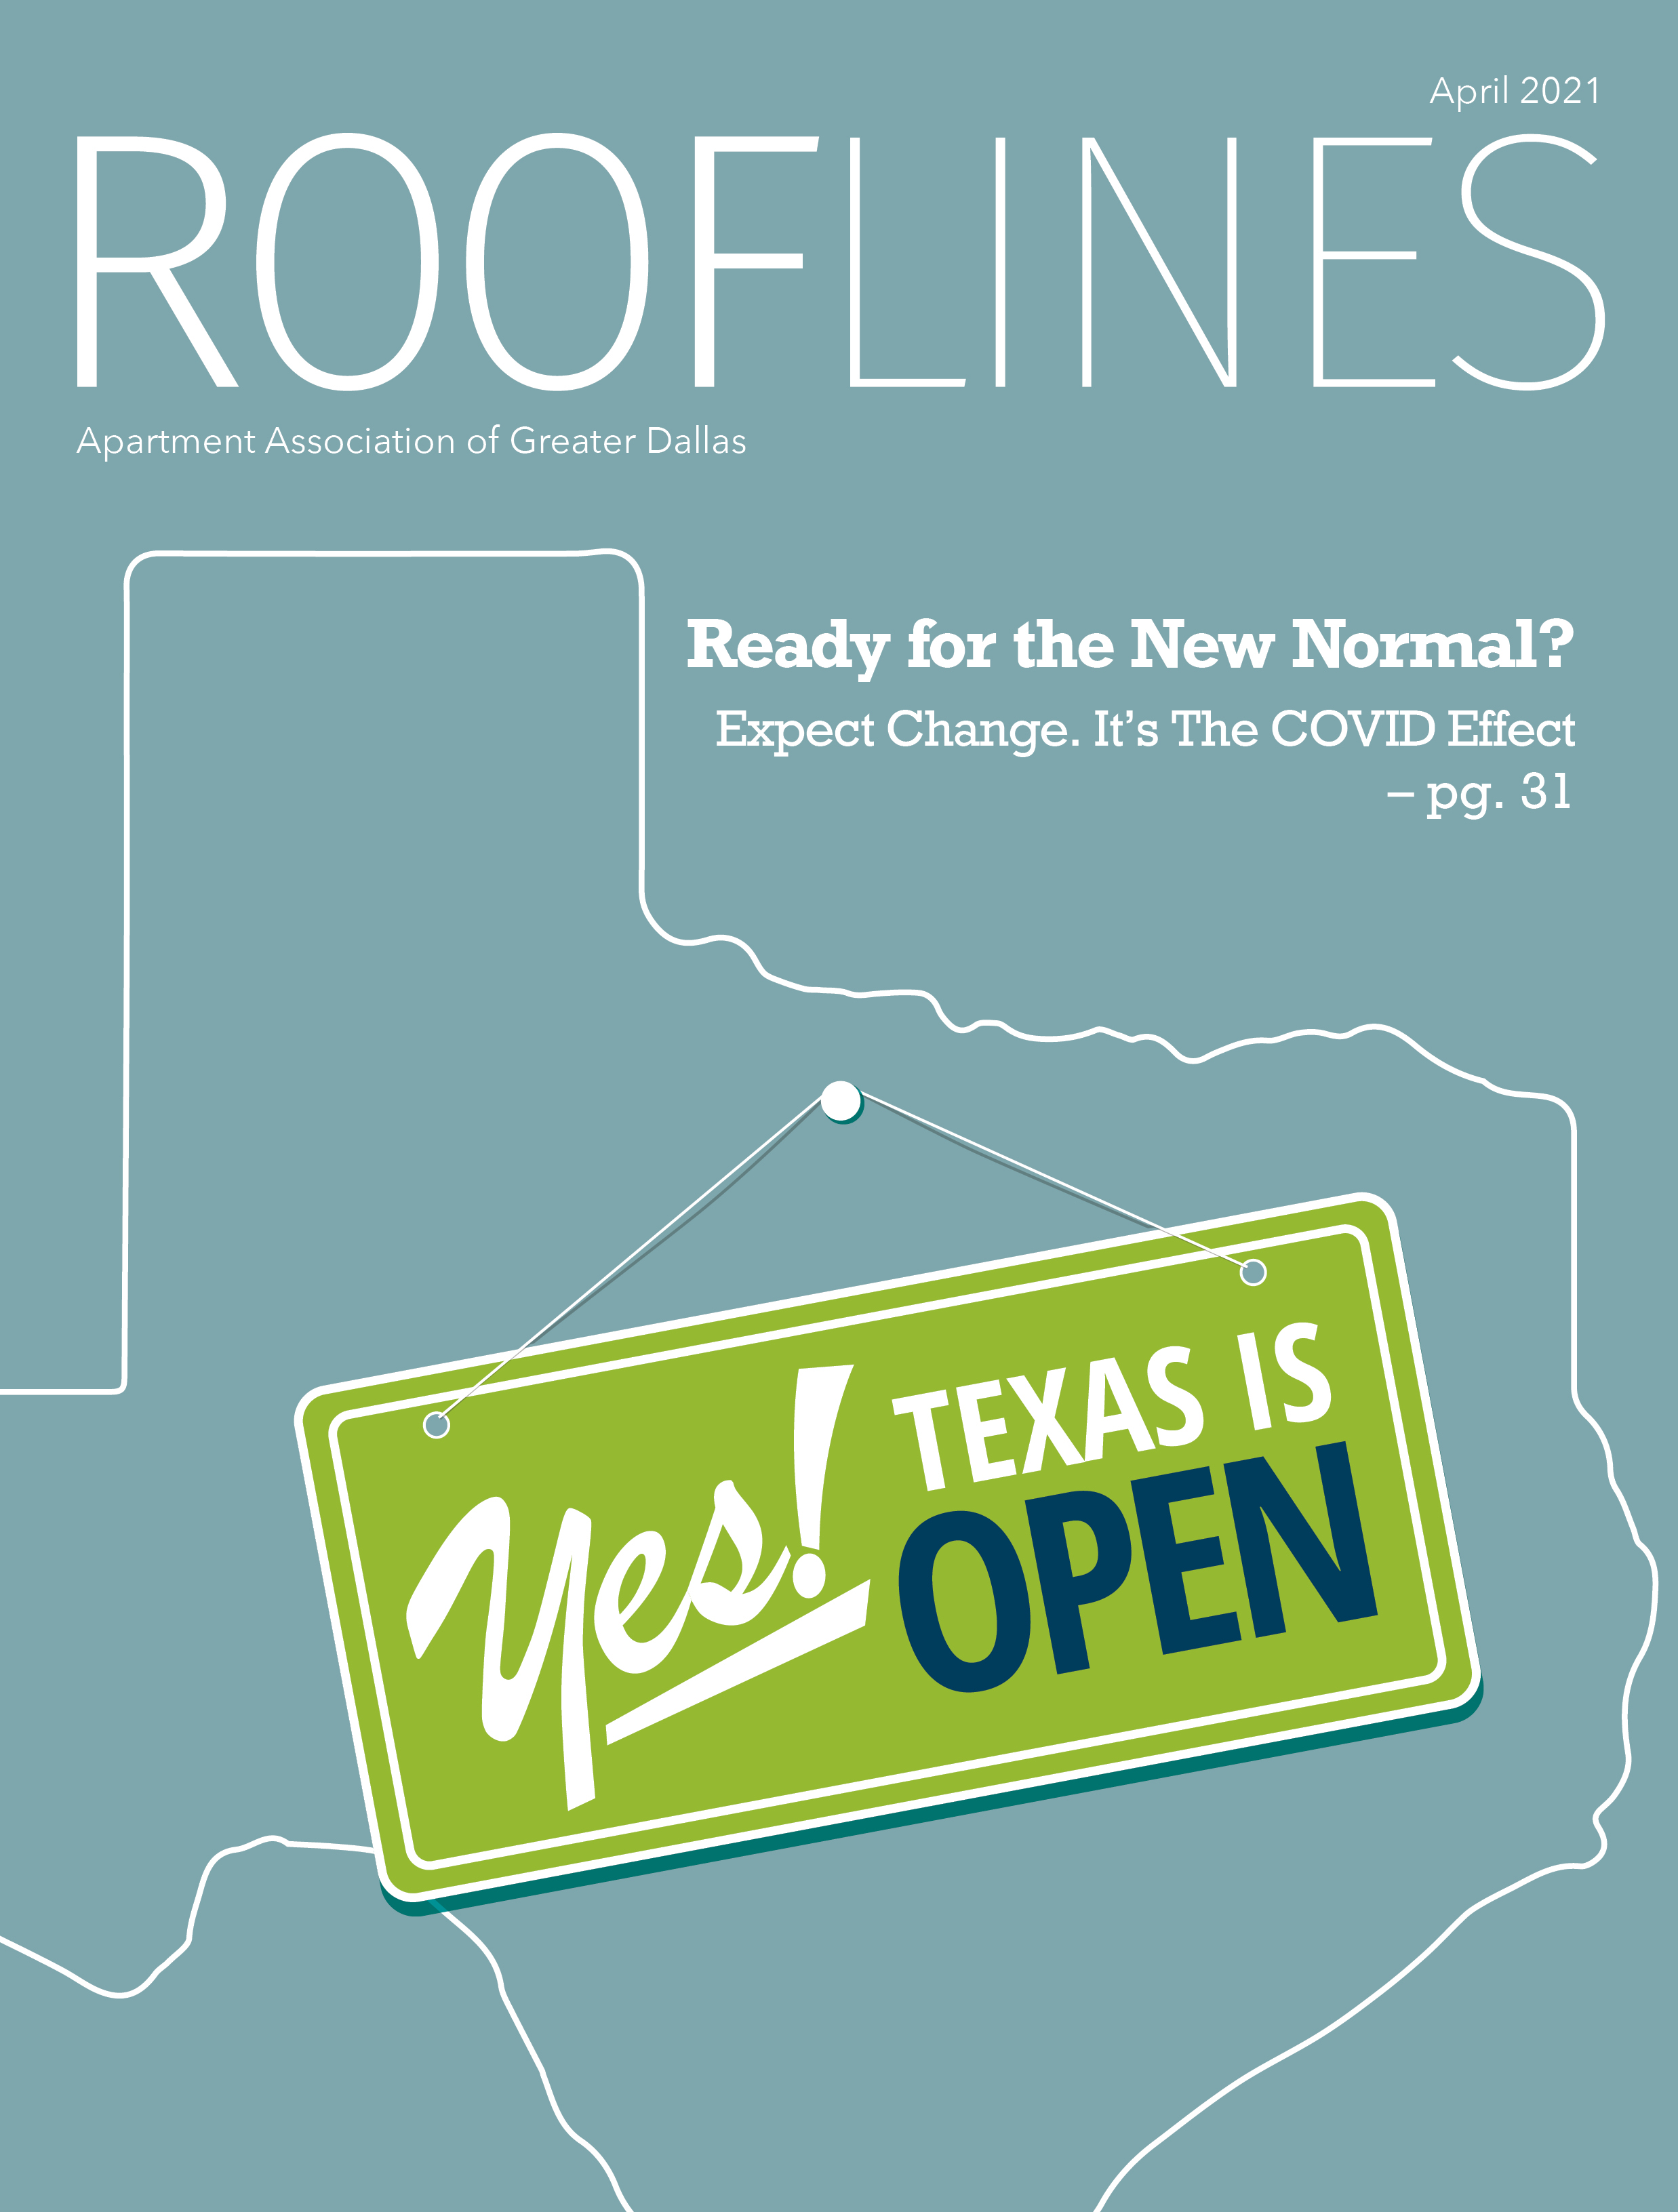 April 2021 Rooflines Cover